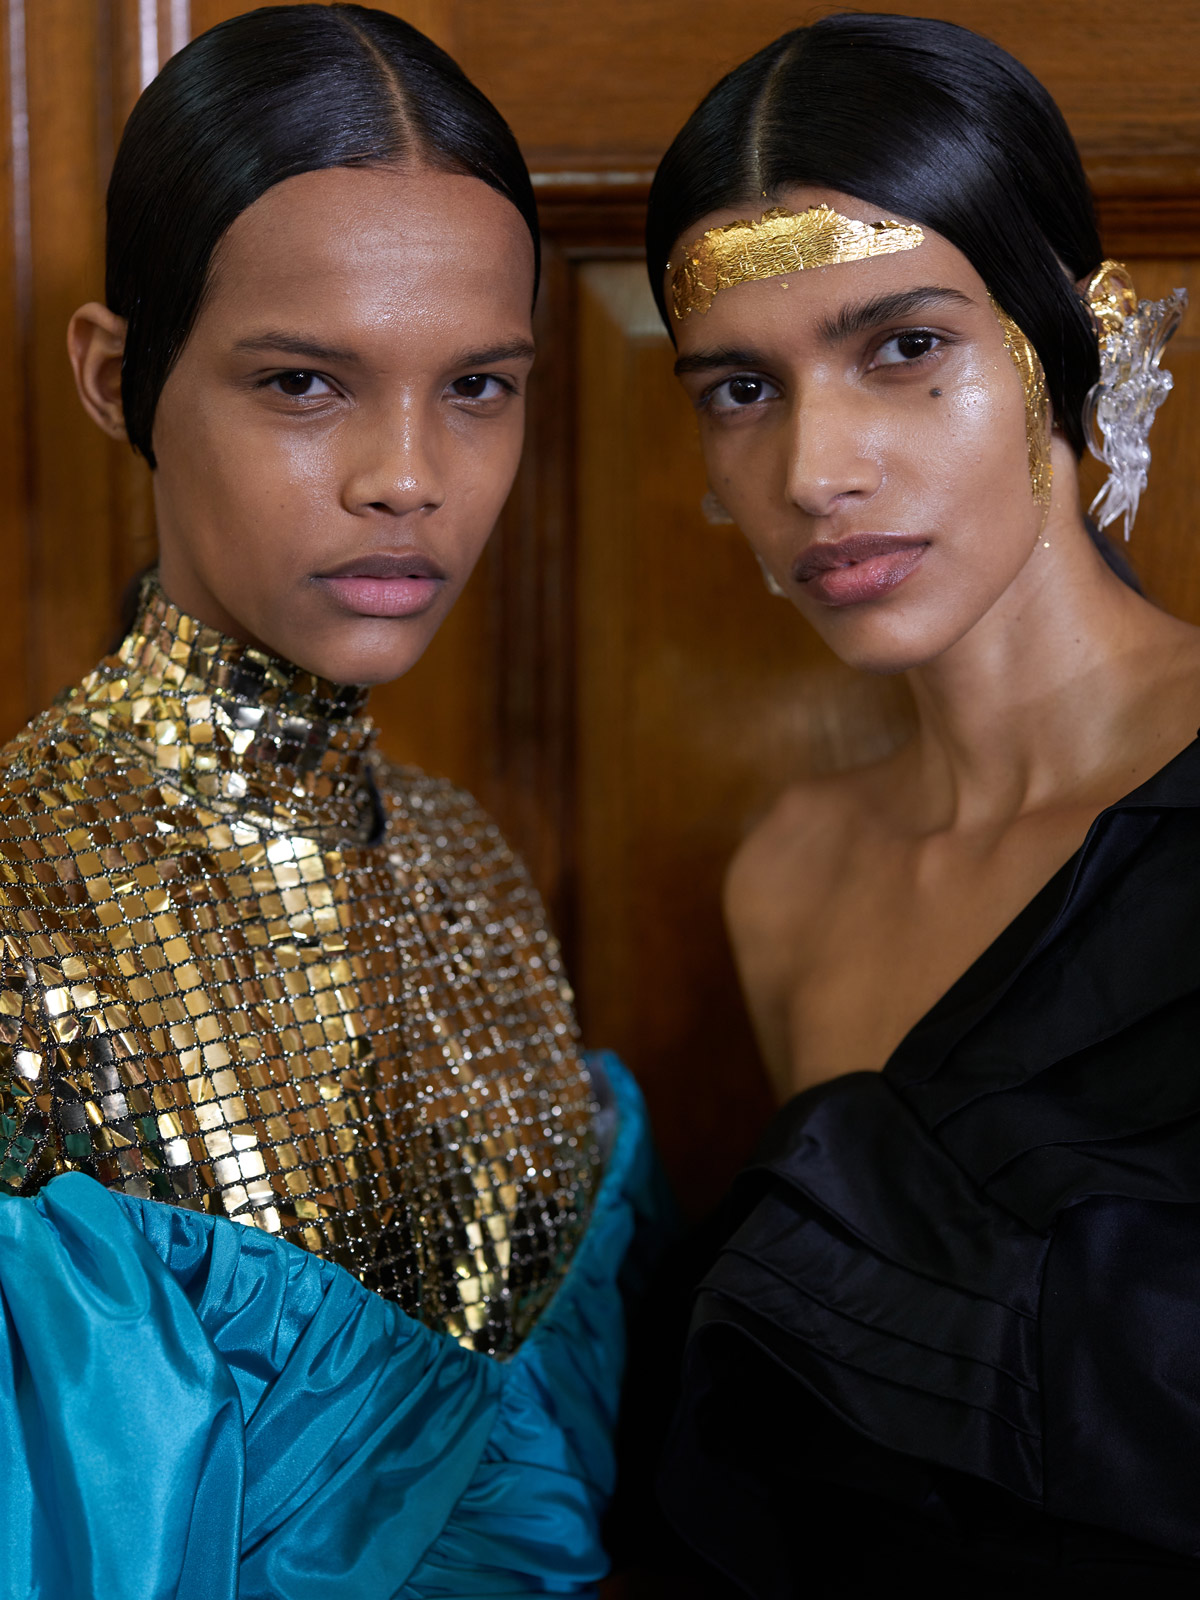 Backstage and close-up at London Fashion Week, with photographer Peter Lowe